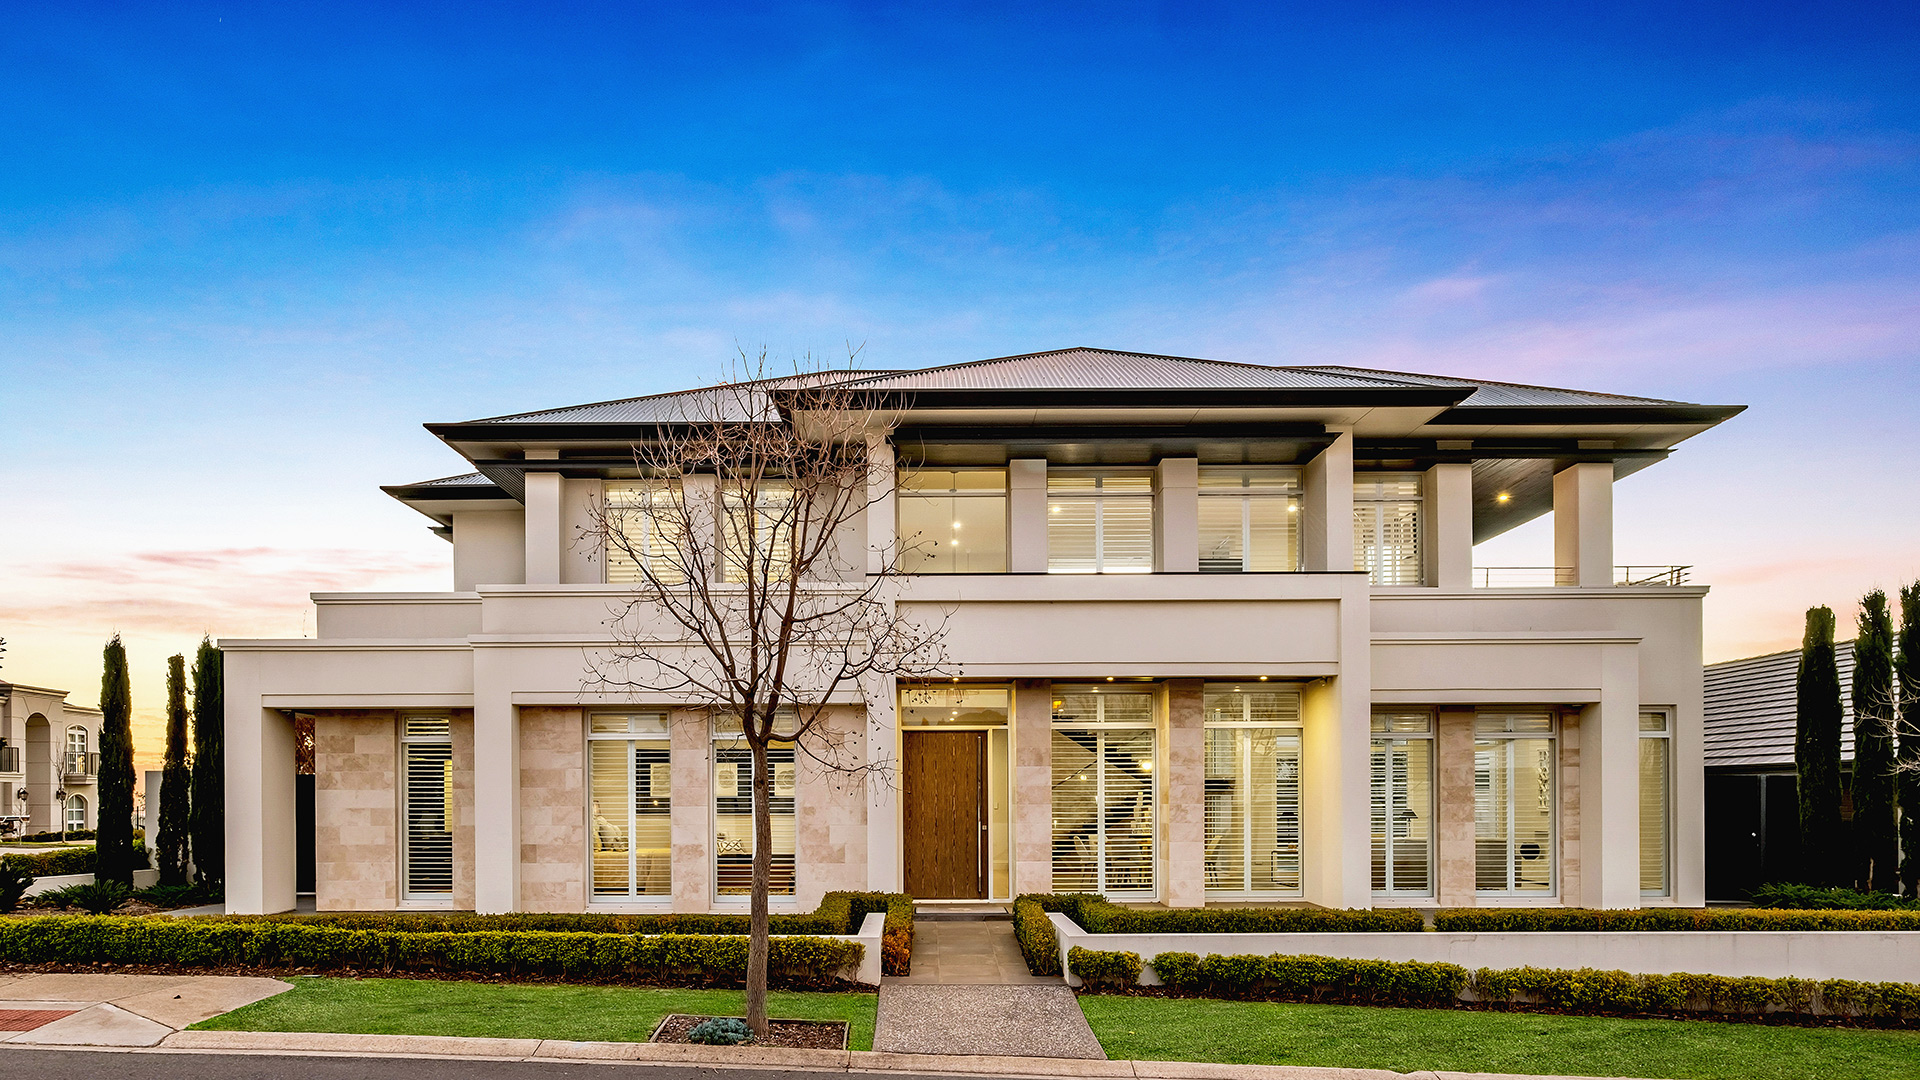 stunning image of the front facade of the grand prize home